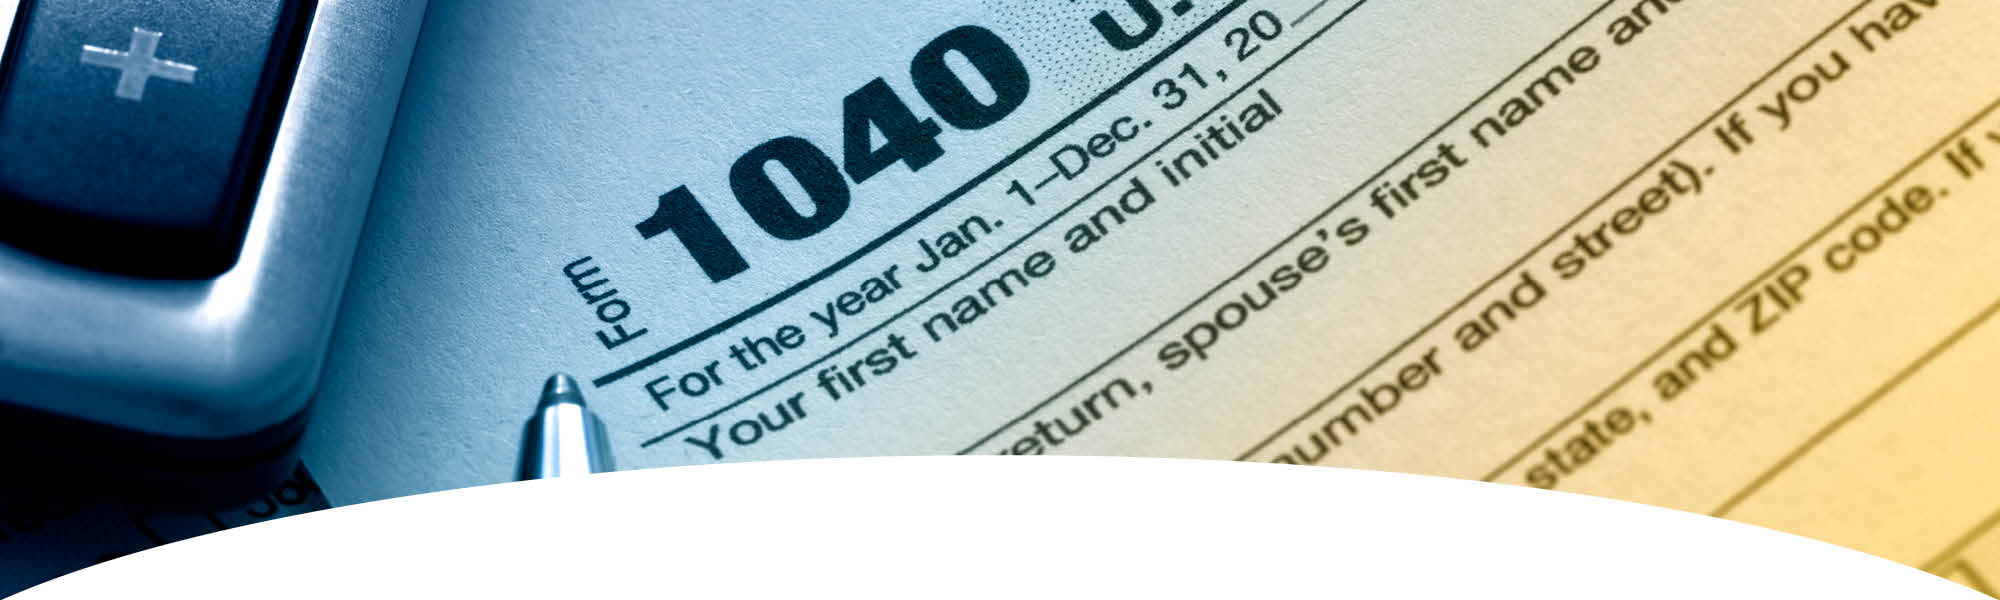 Free Tax Preparation and Resources - 1040 Tax Form